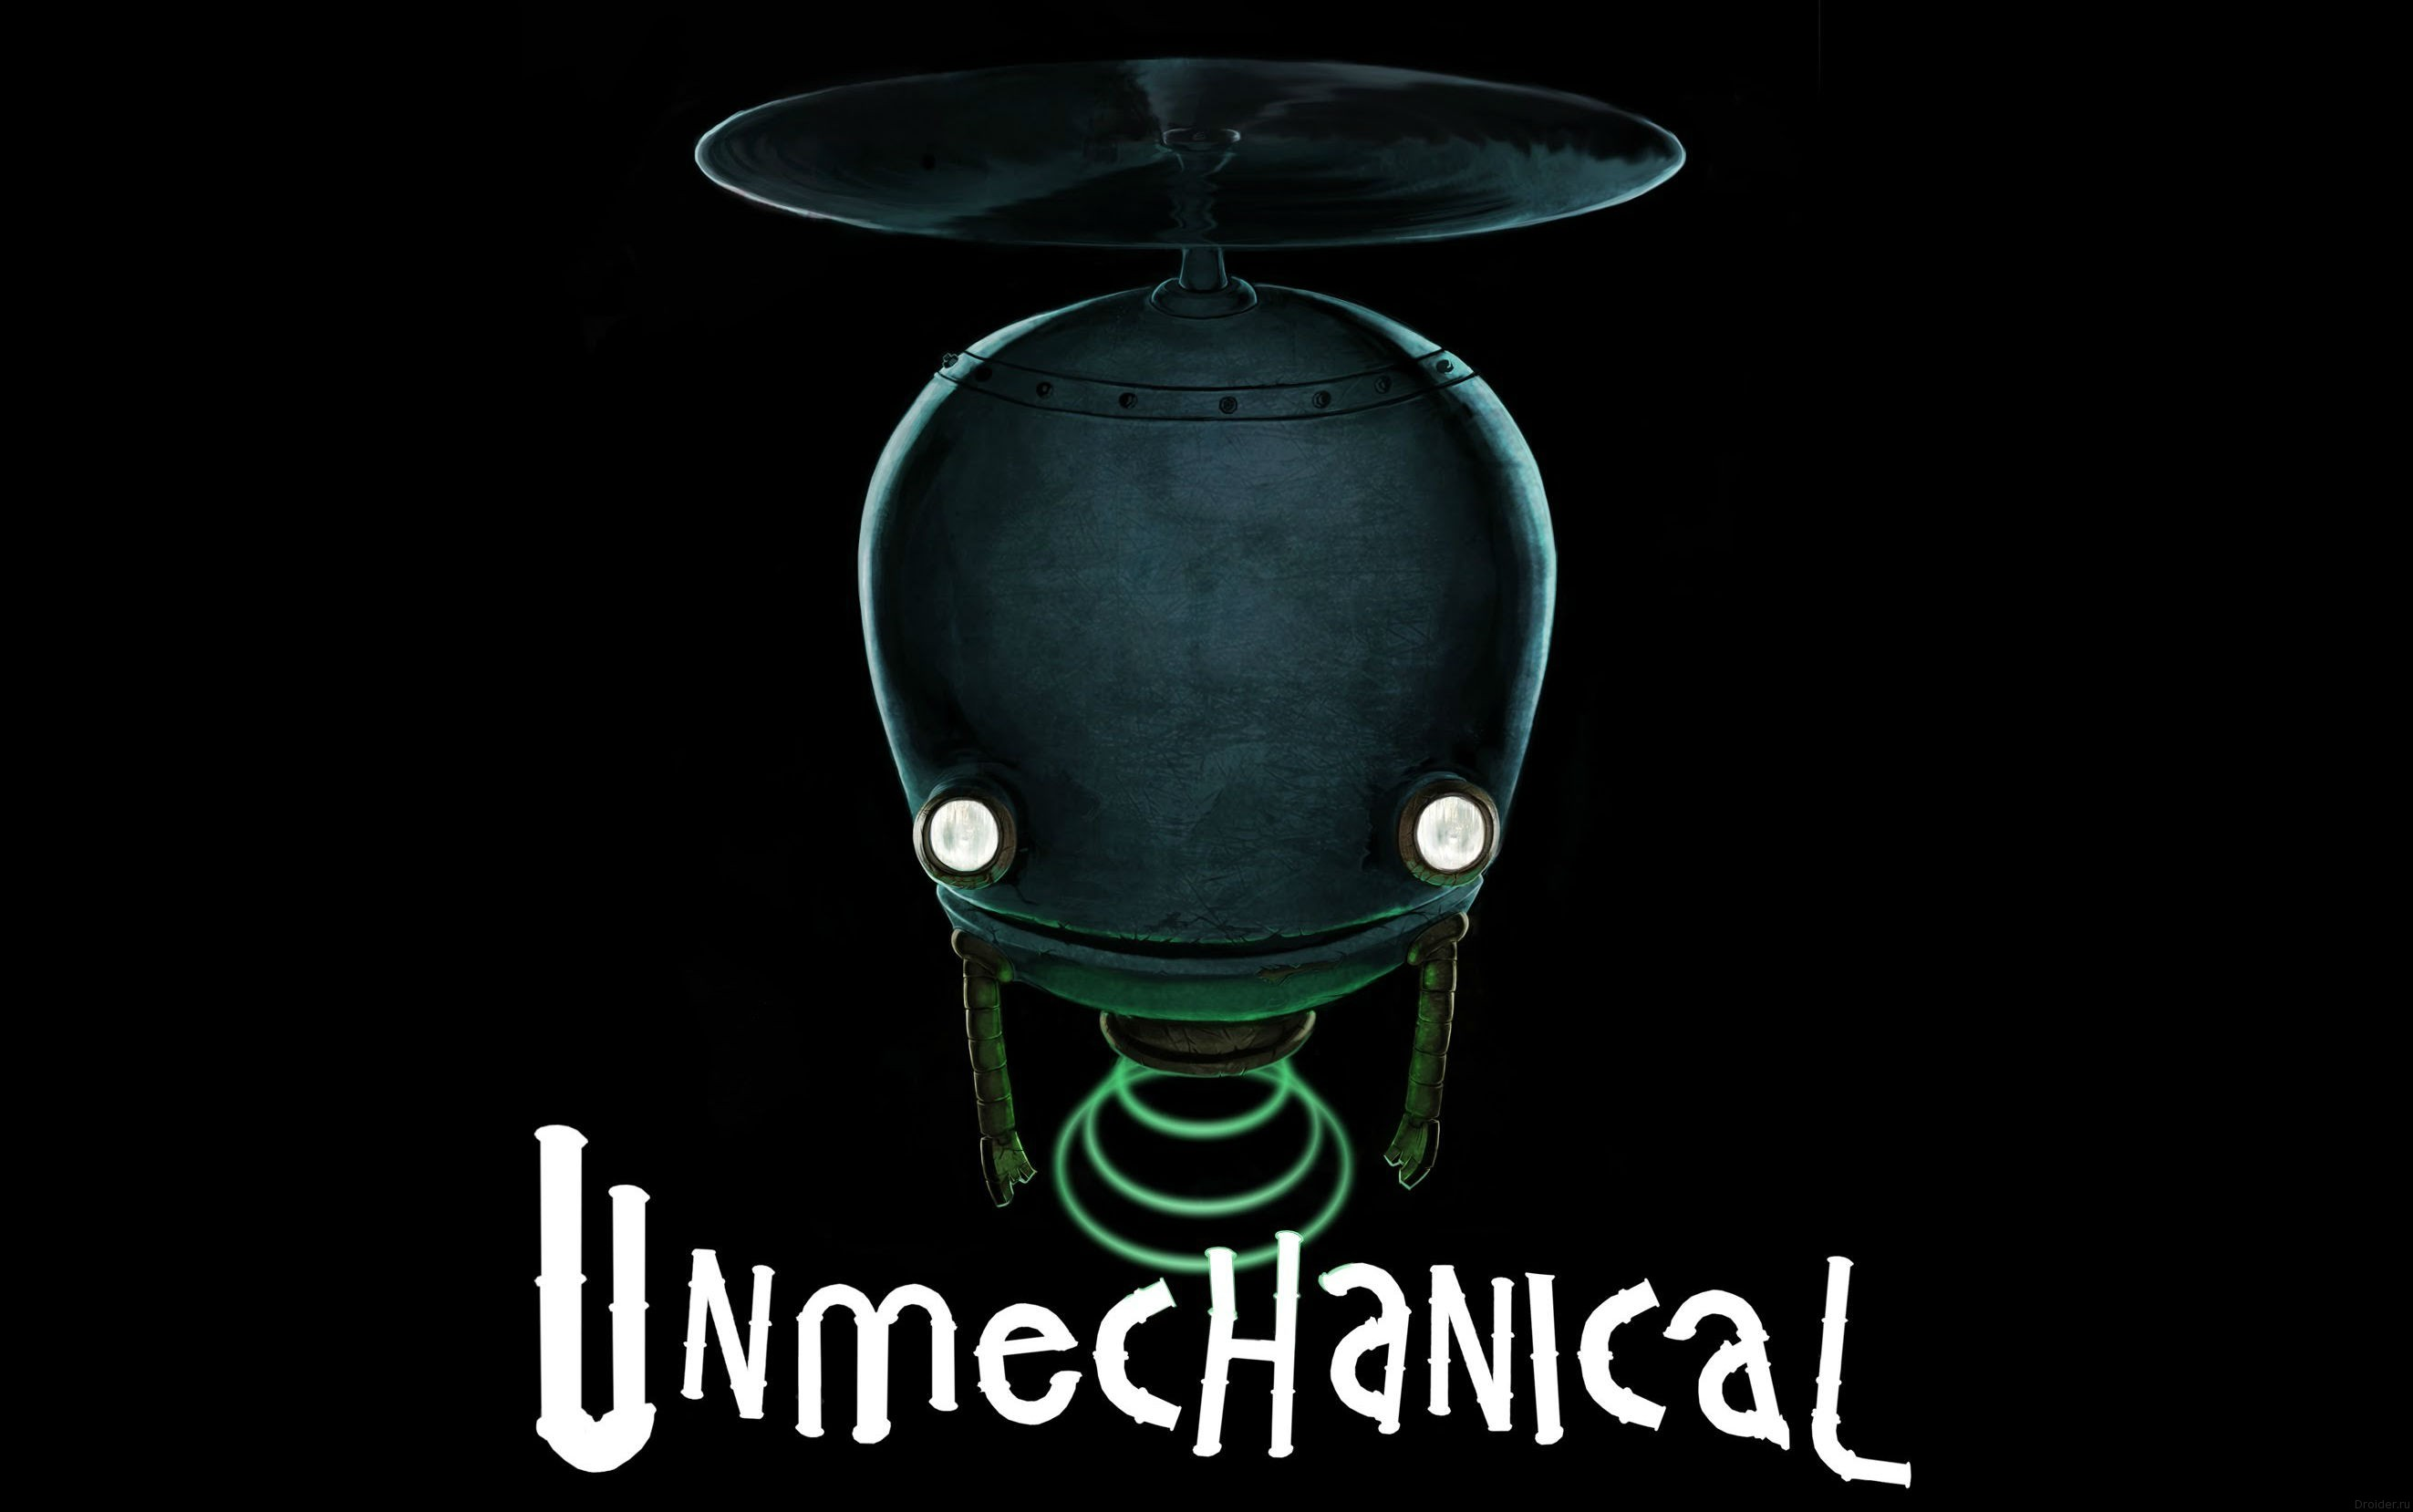 Головоломка Unmechanical